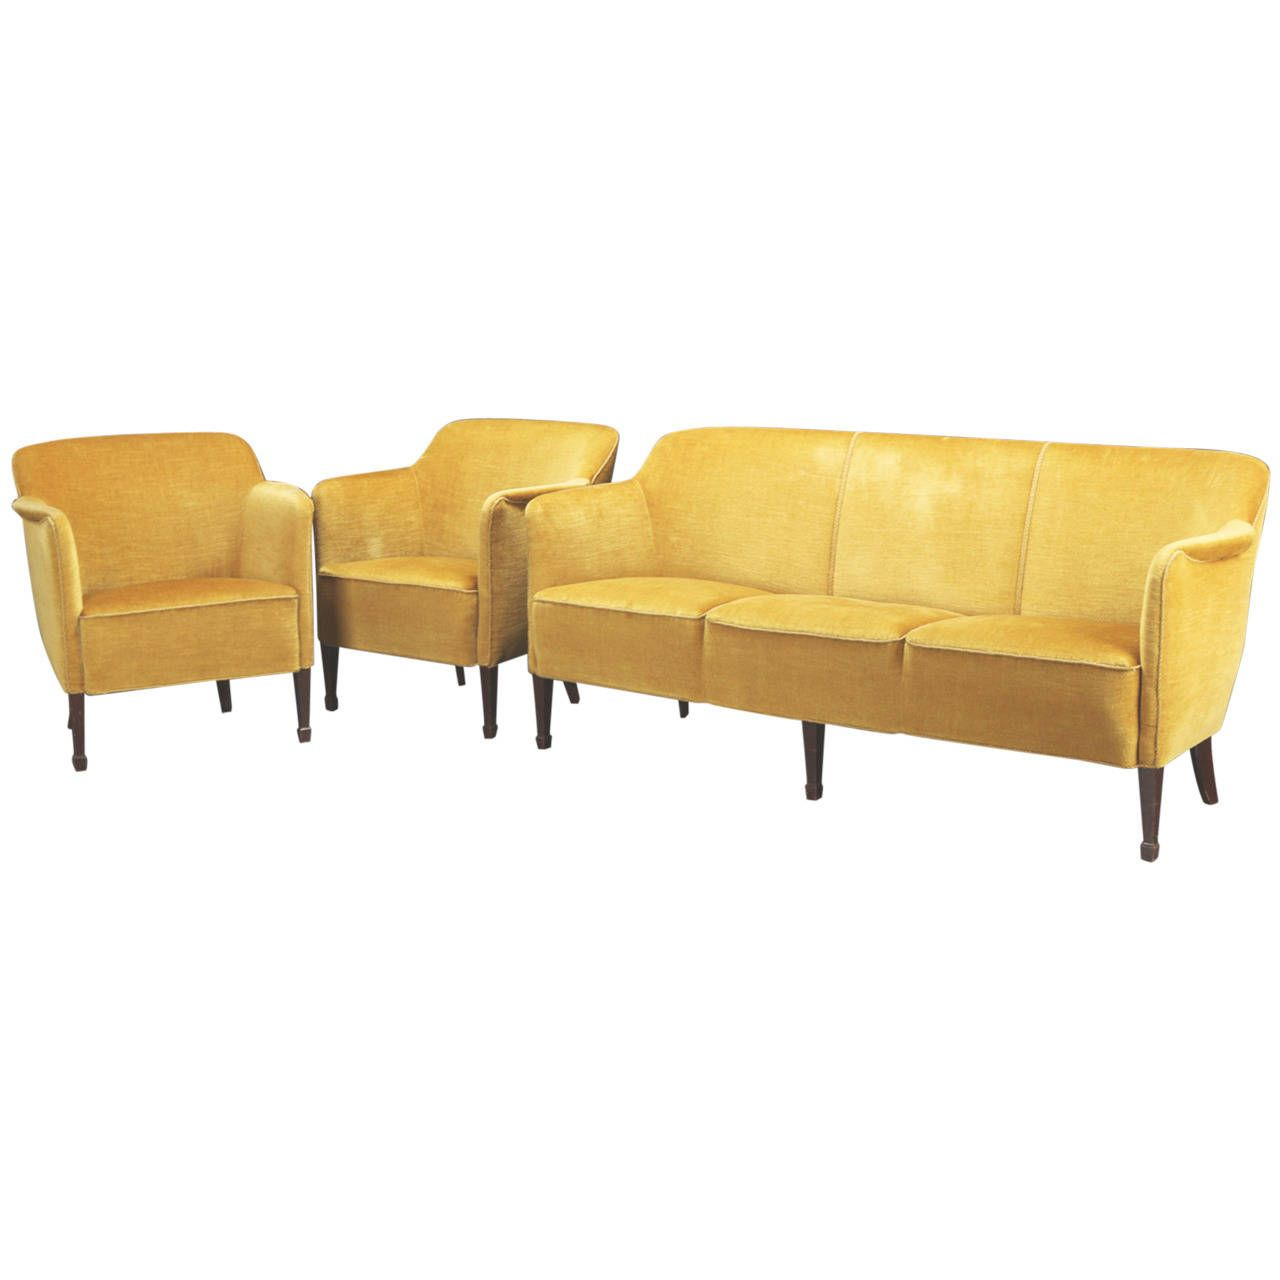 Danish 1940s Mohair Upholstered Three Seat Sofa And Pair Of Tub  # Muebles Camarillo